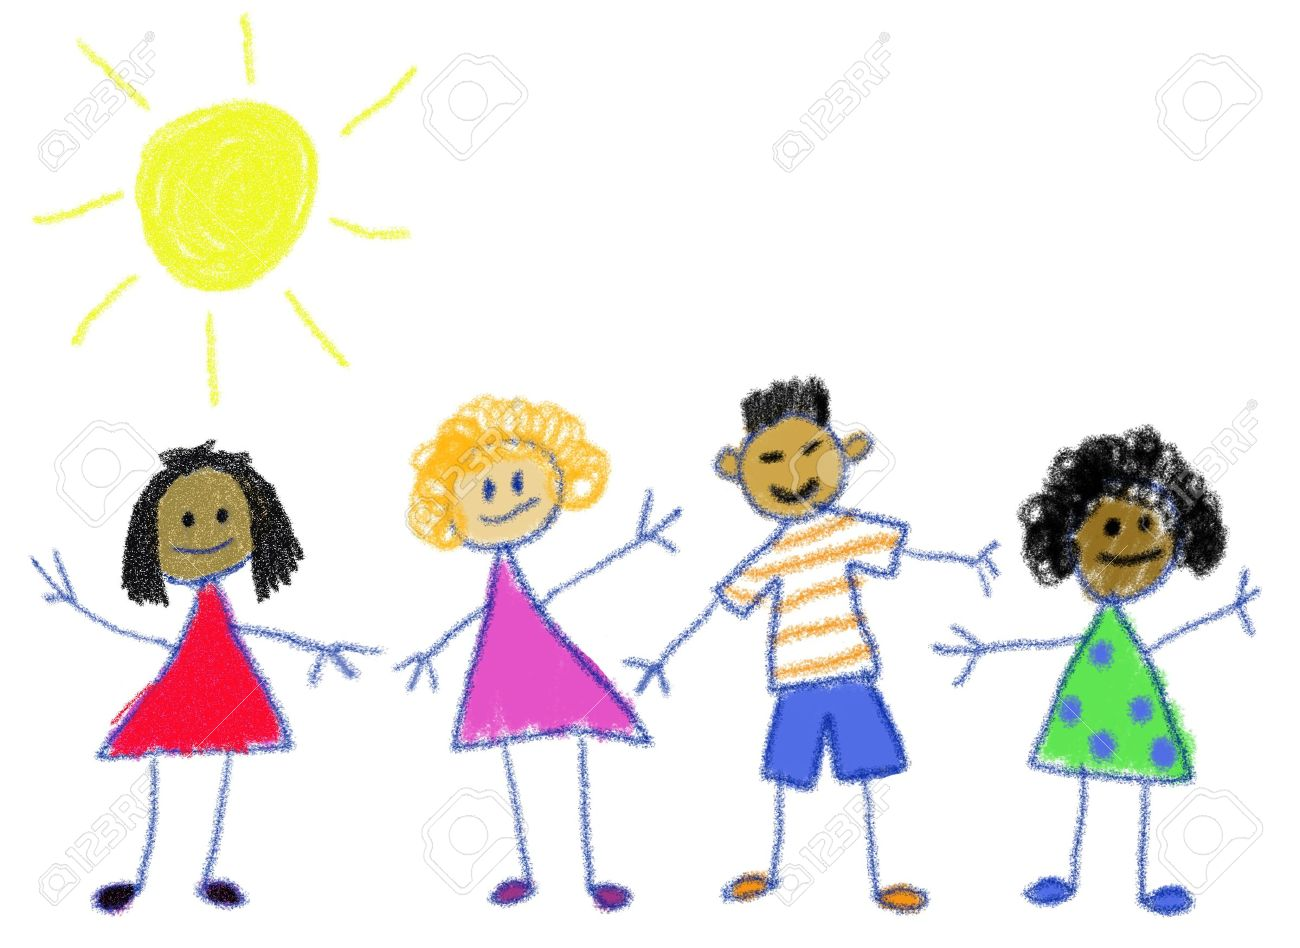 Multicultural kids in the style of a child's crayon drawing Stock Photo - 5451618